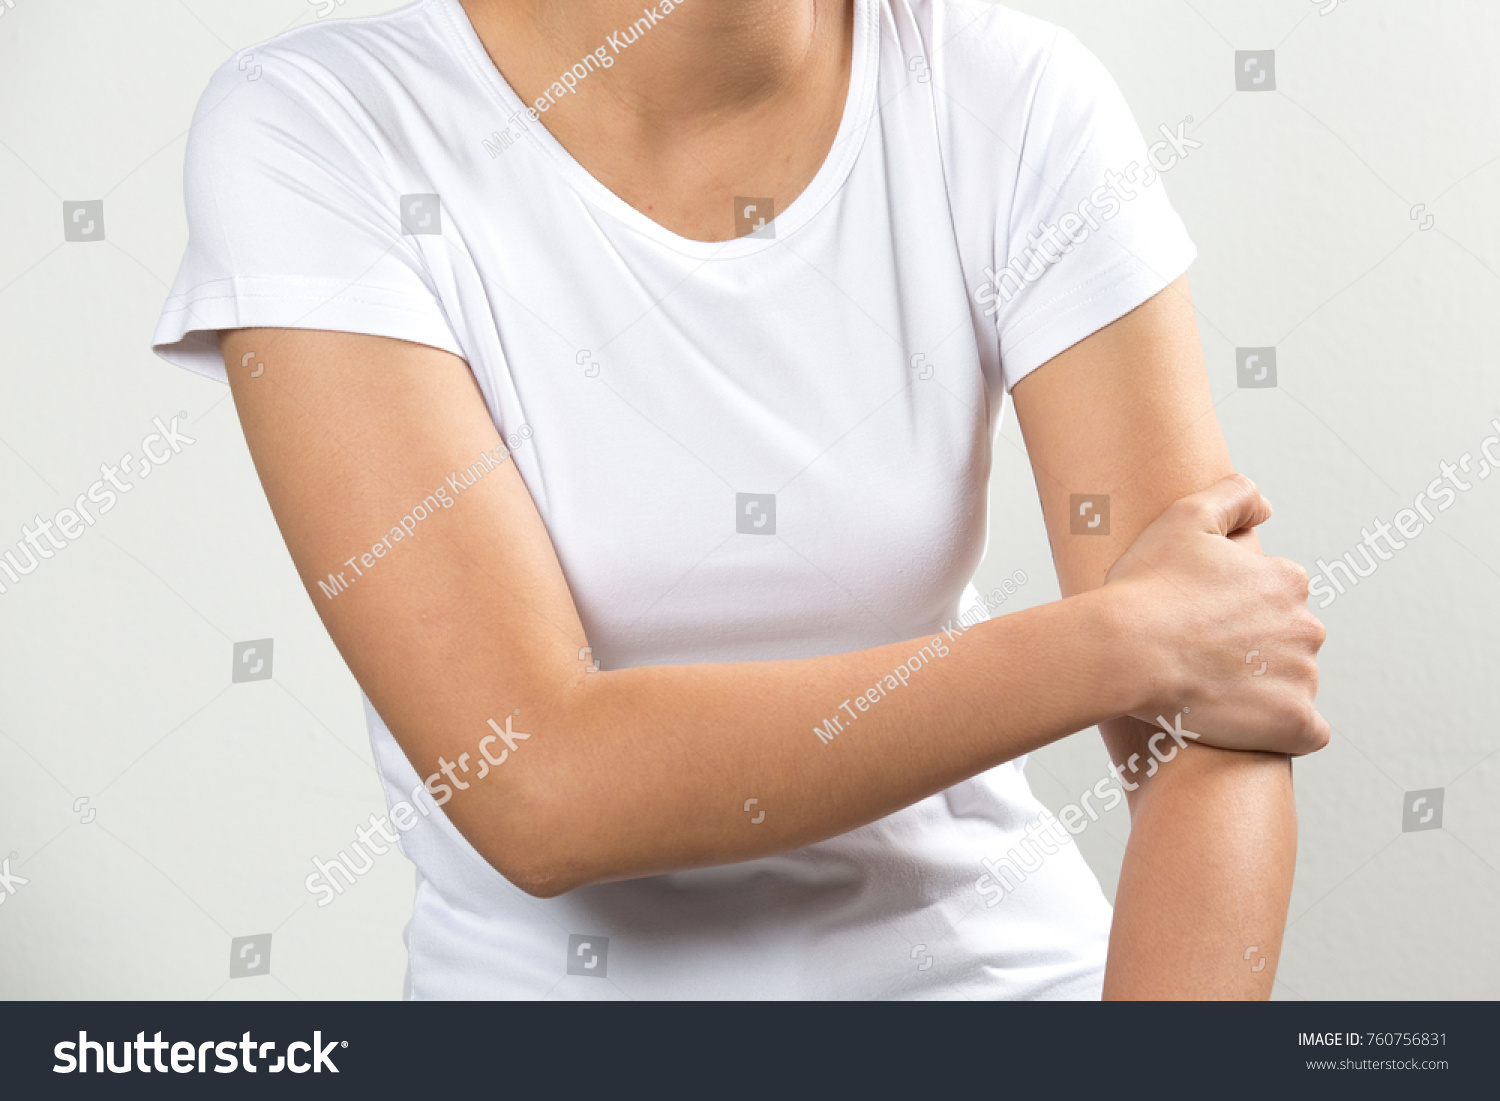 Arms Pain Beautiful Woman Suffering From Painful Feeling In Arm